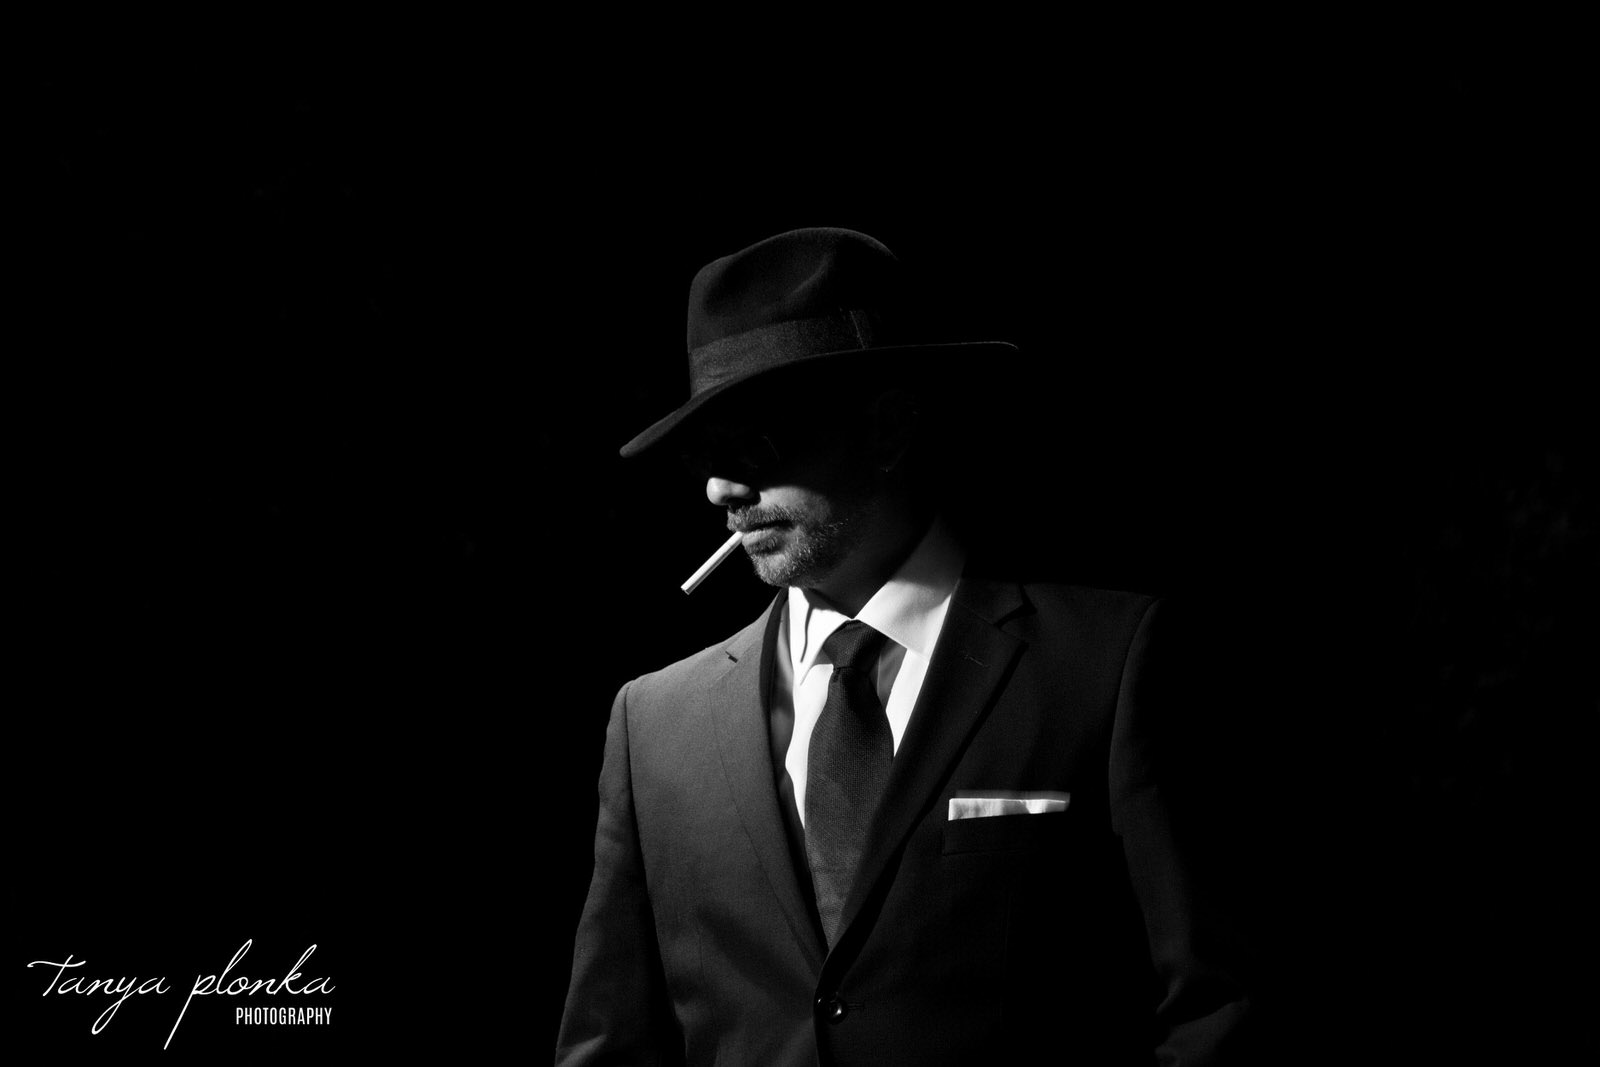 black and white film noir style photo of man with cigarette in mouth